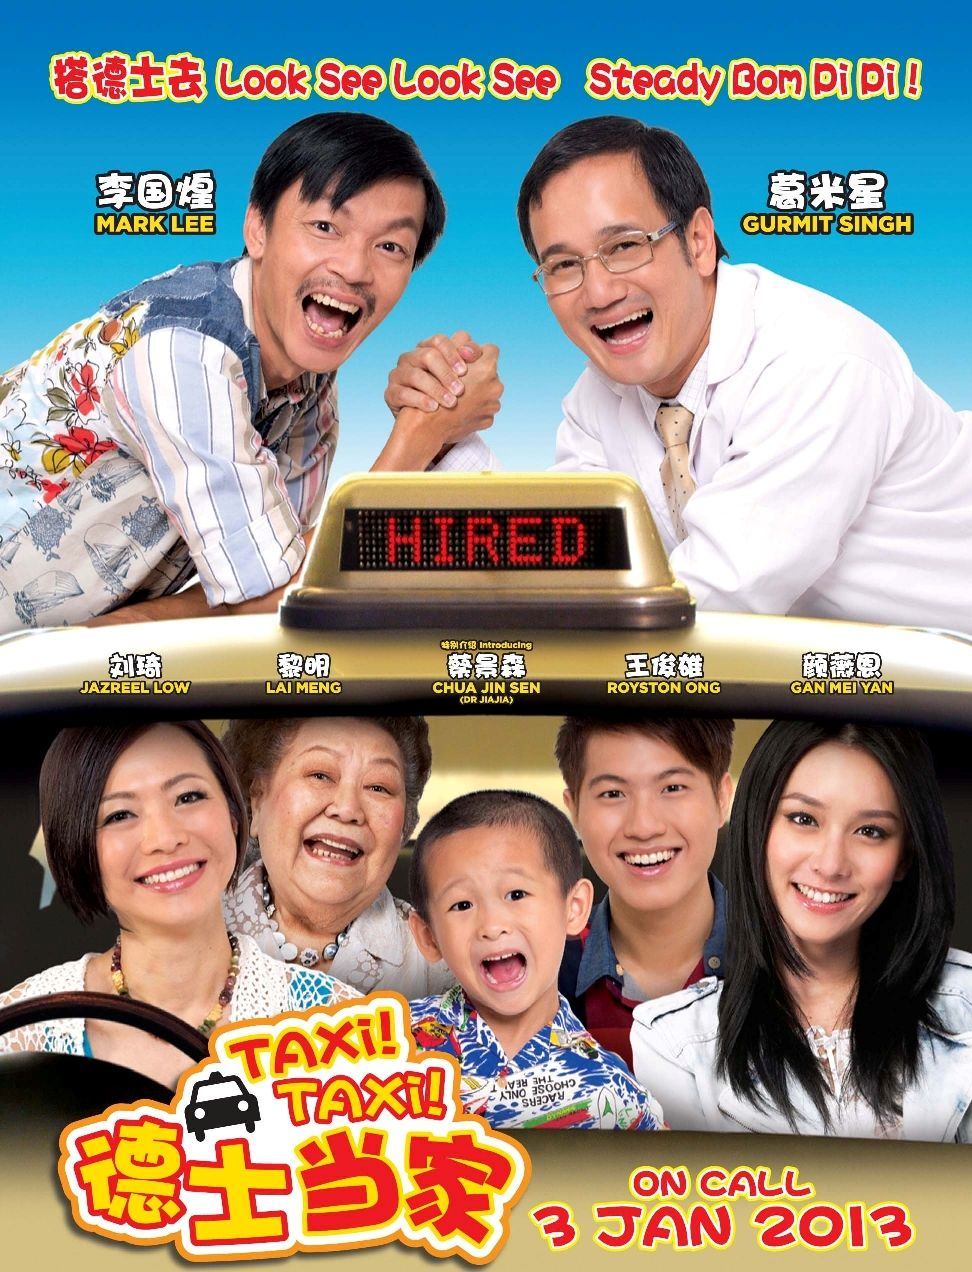 Taxi Taxi, a Singaporean movie that construct the life of